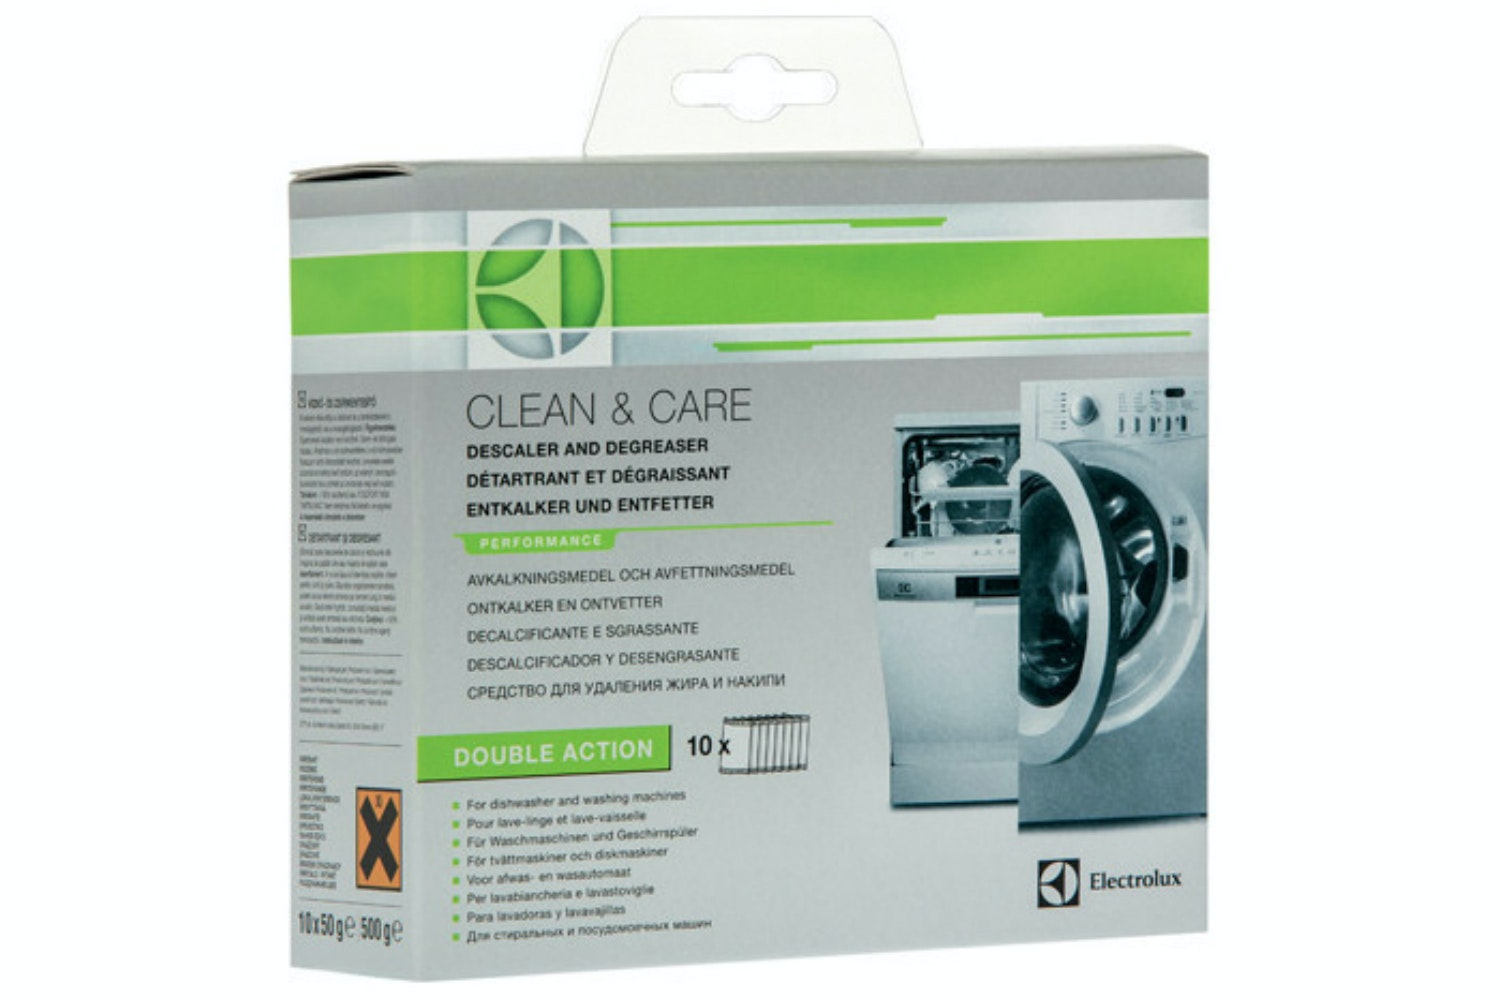 Electrolux Clean/Clear-Descaler and Degreaser | 9029792745